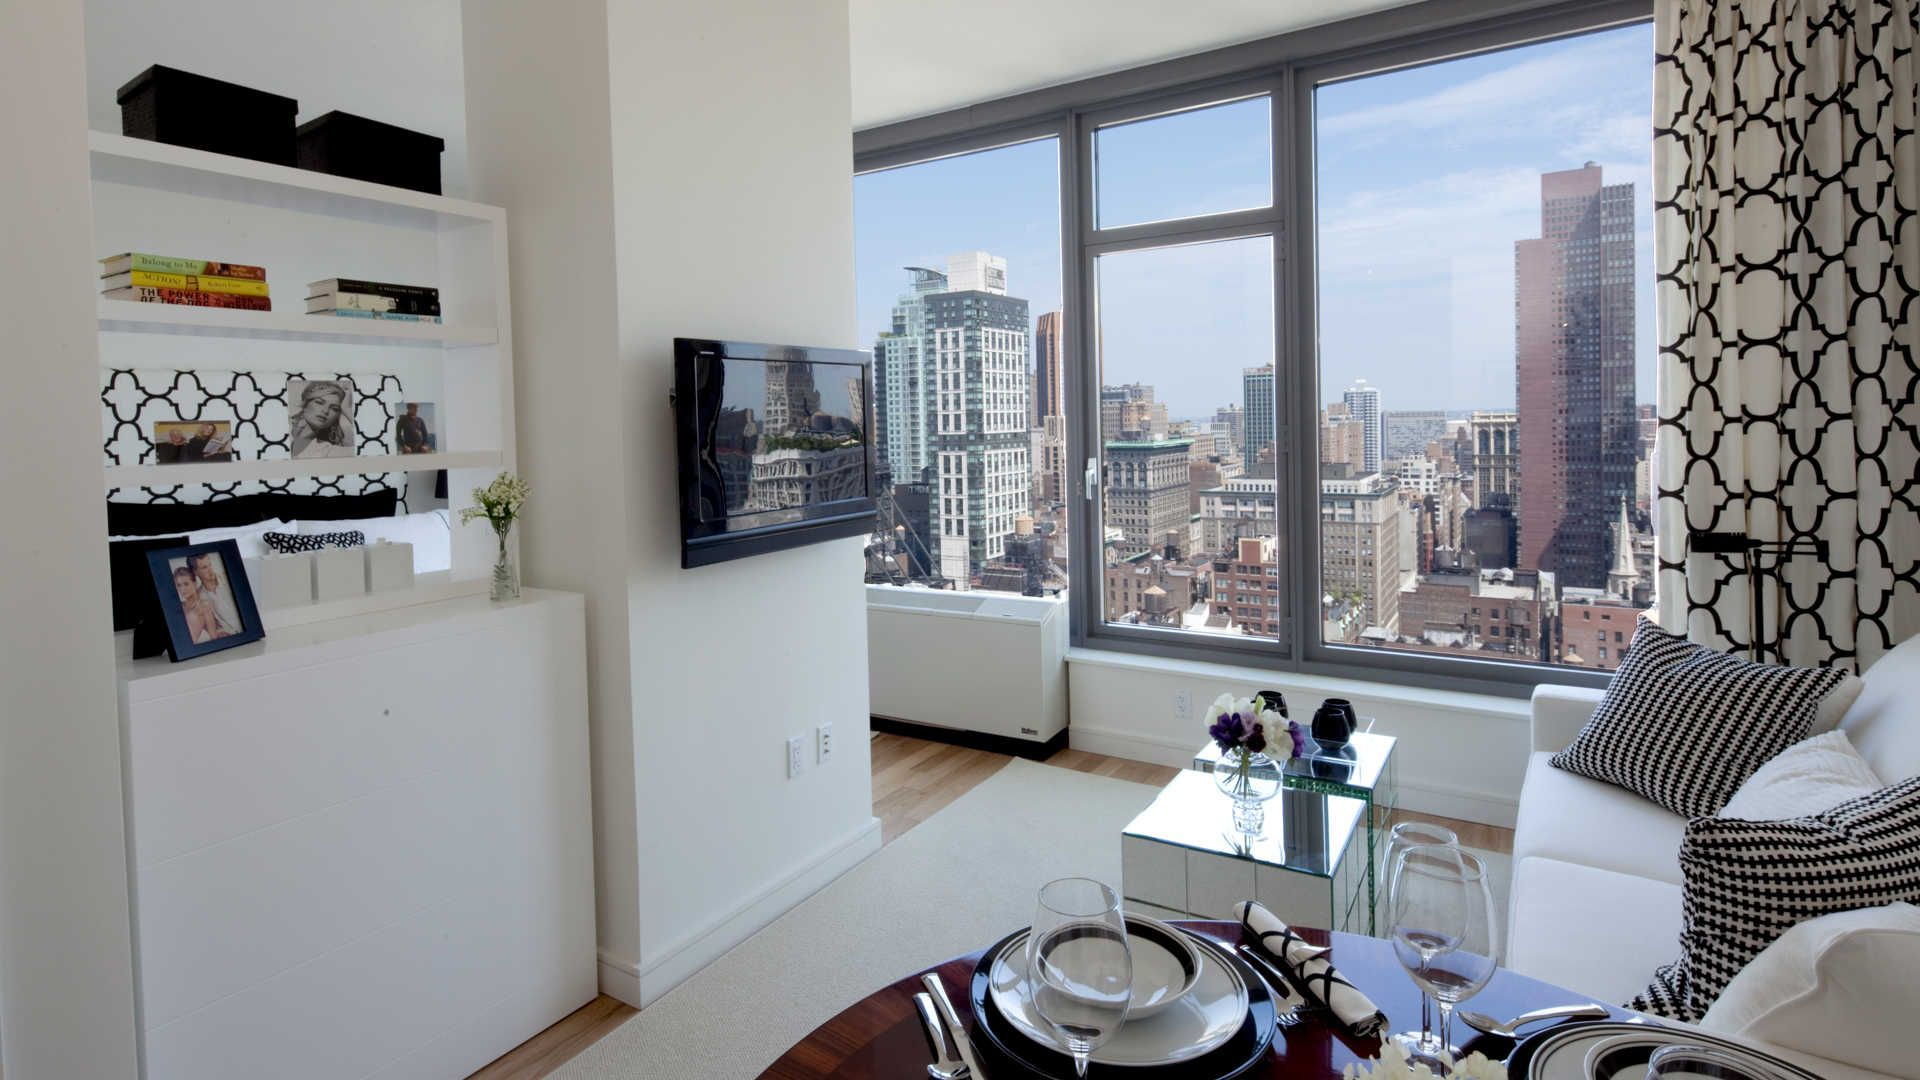 My Equity Appartments - HOME DECOR